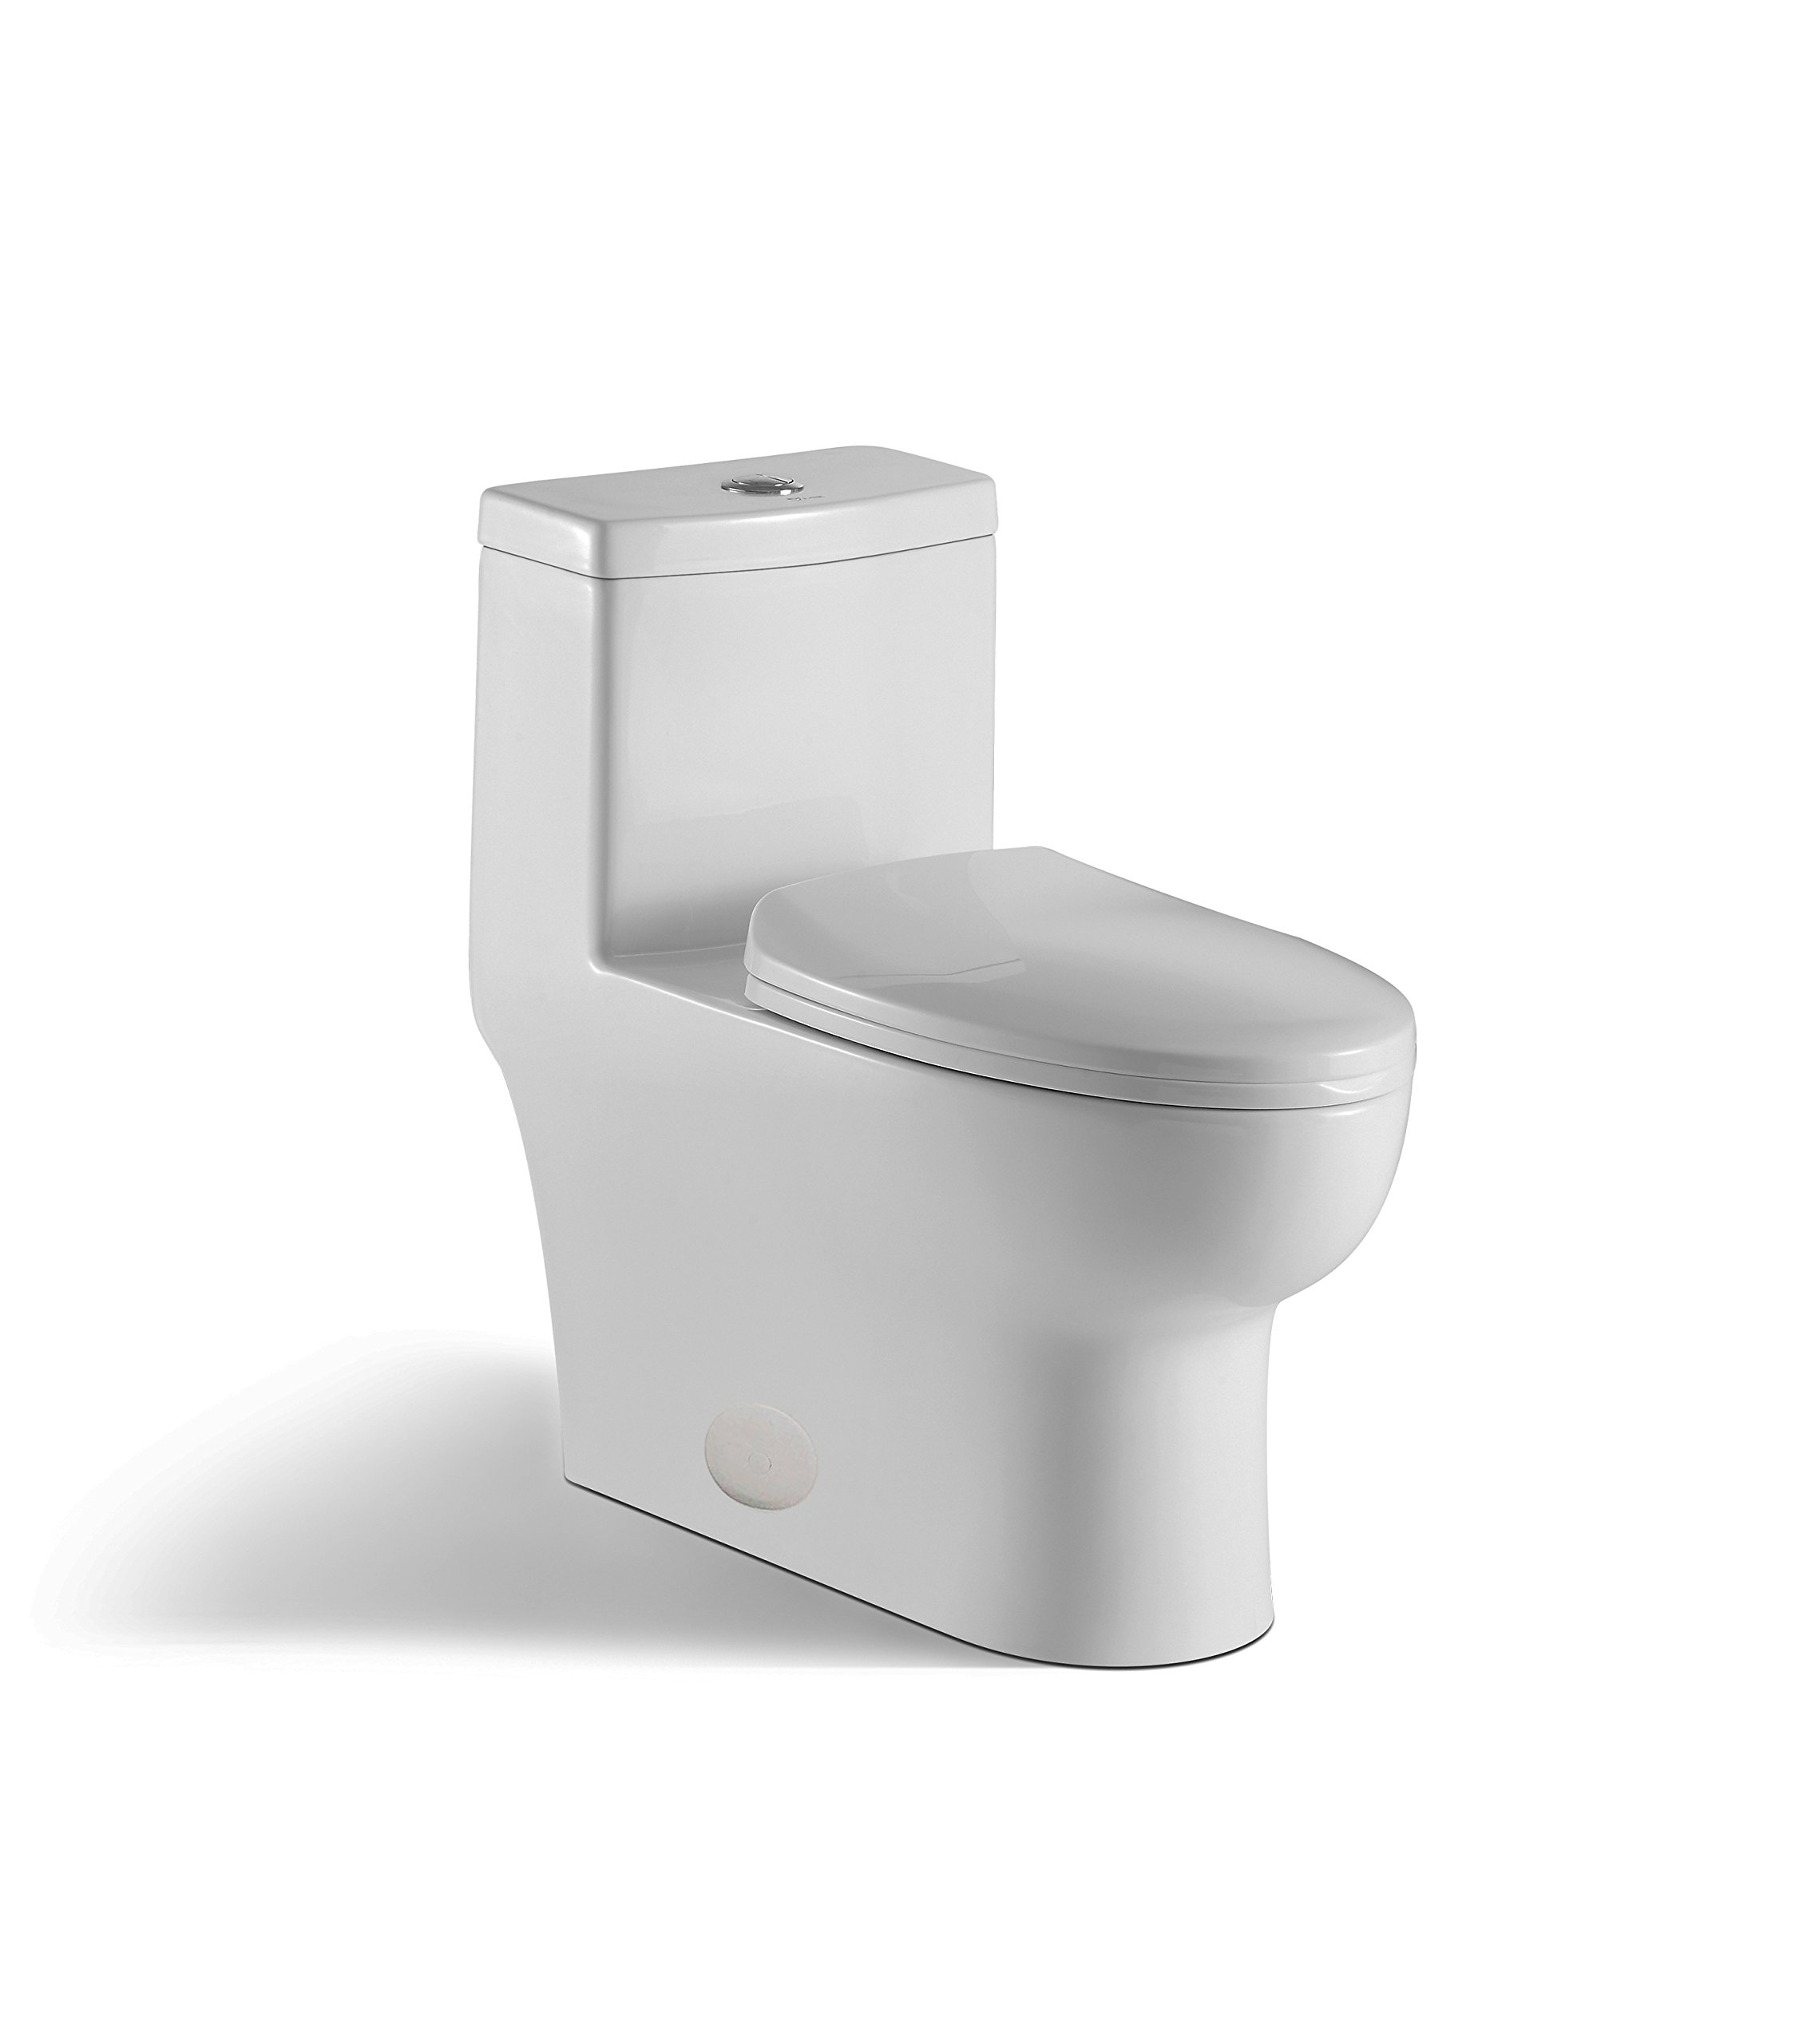 innoci-usa Contour 1-piece 0.8 GPF/1.28 GPF High Efficiency Dual Flush Elongated Toilet in White